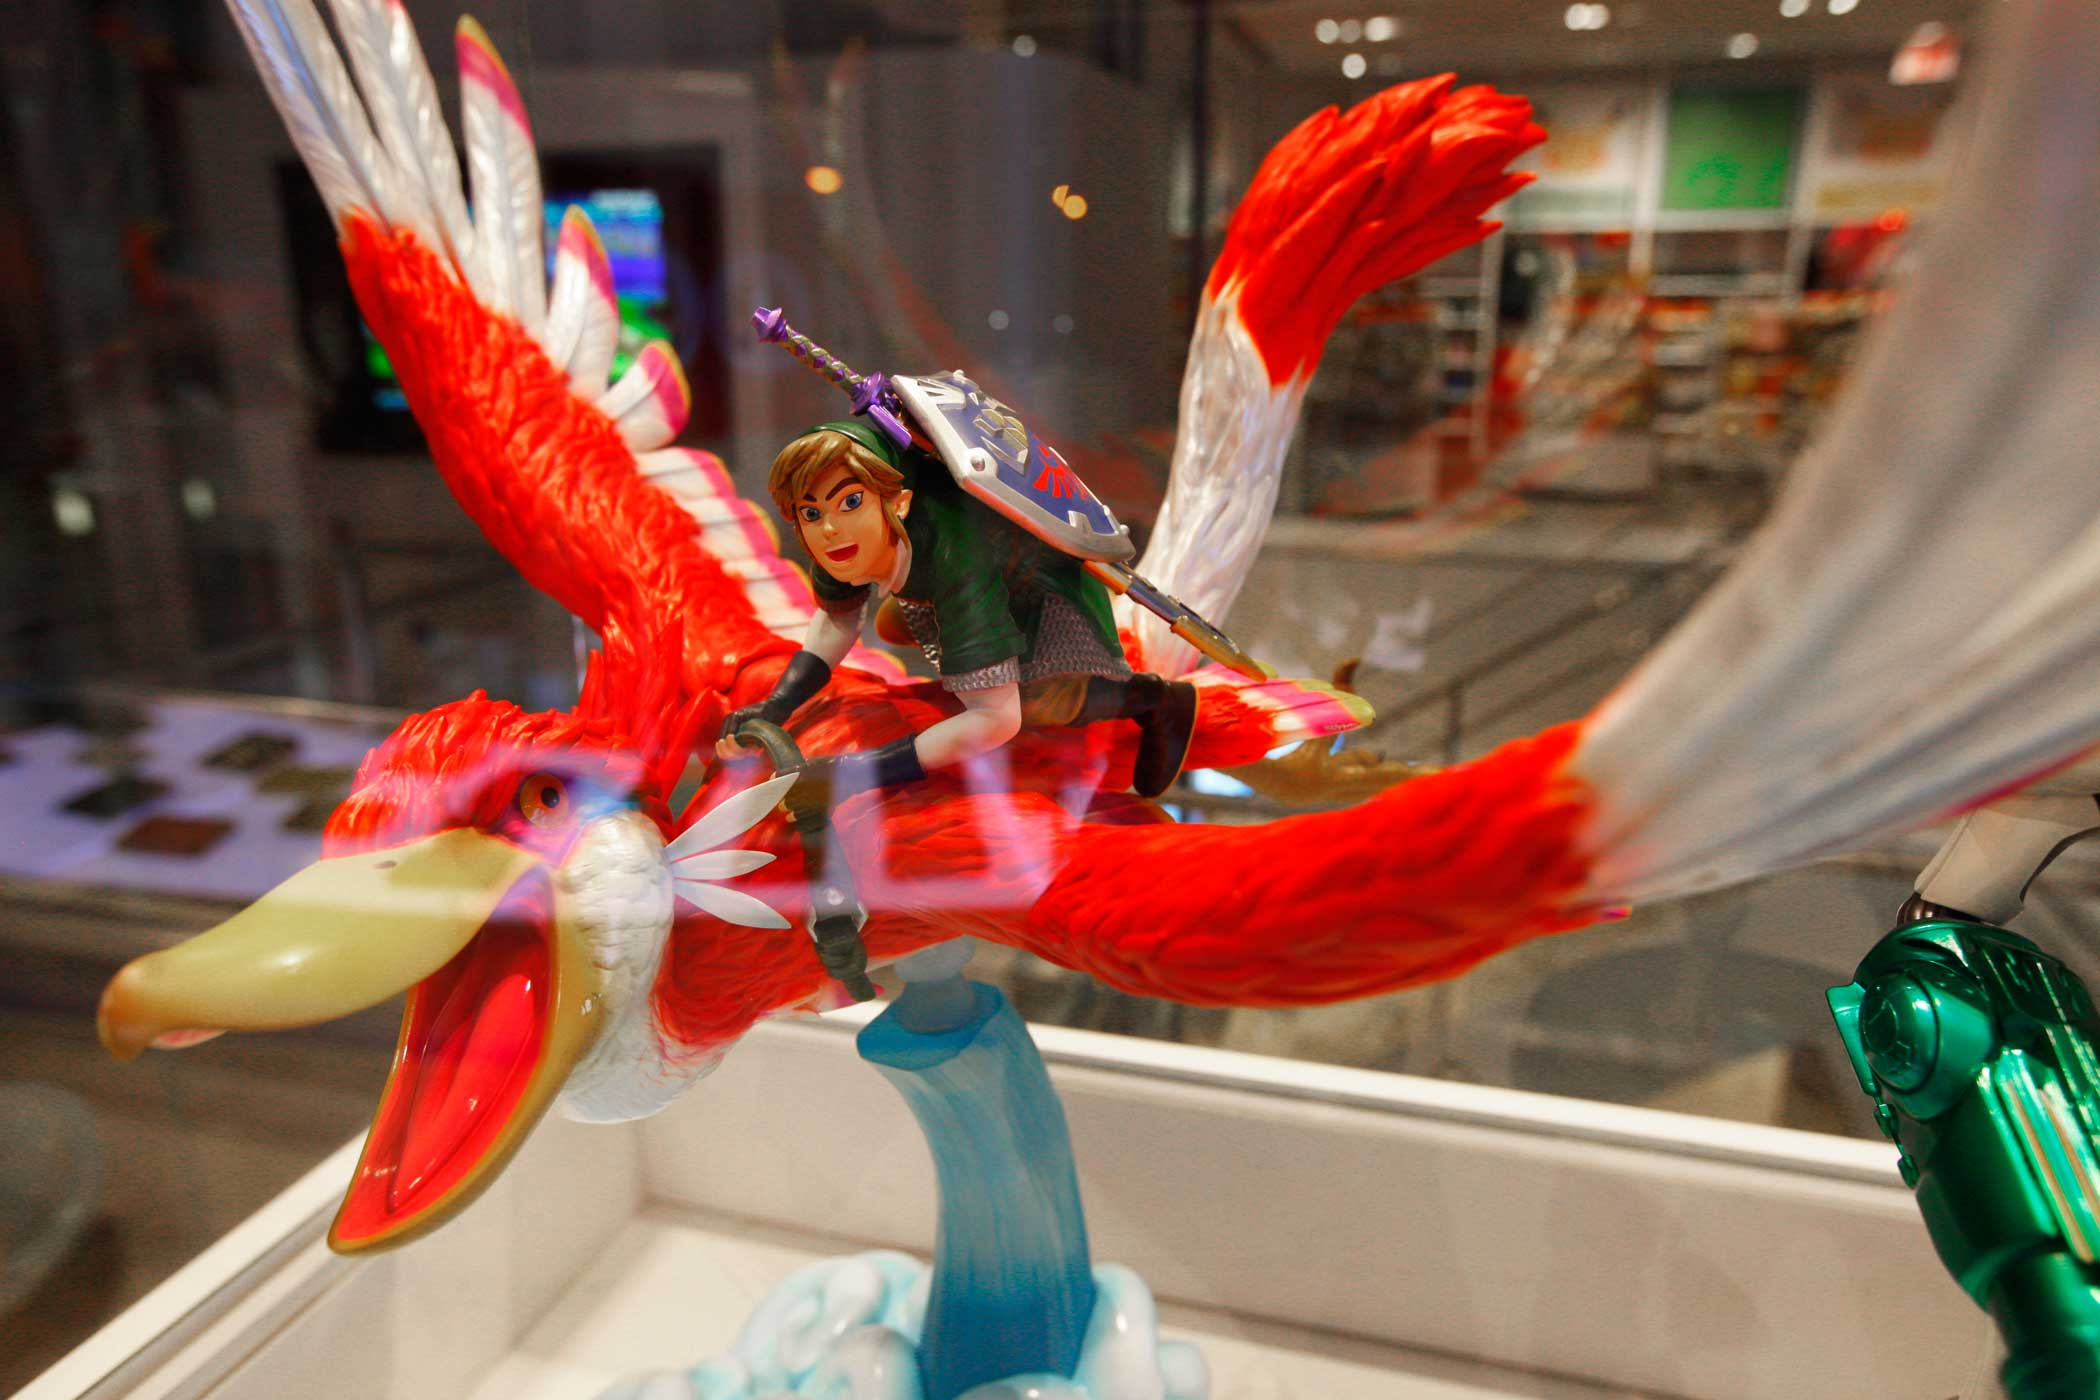 Detailed figurines are spread around the store.